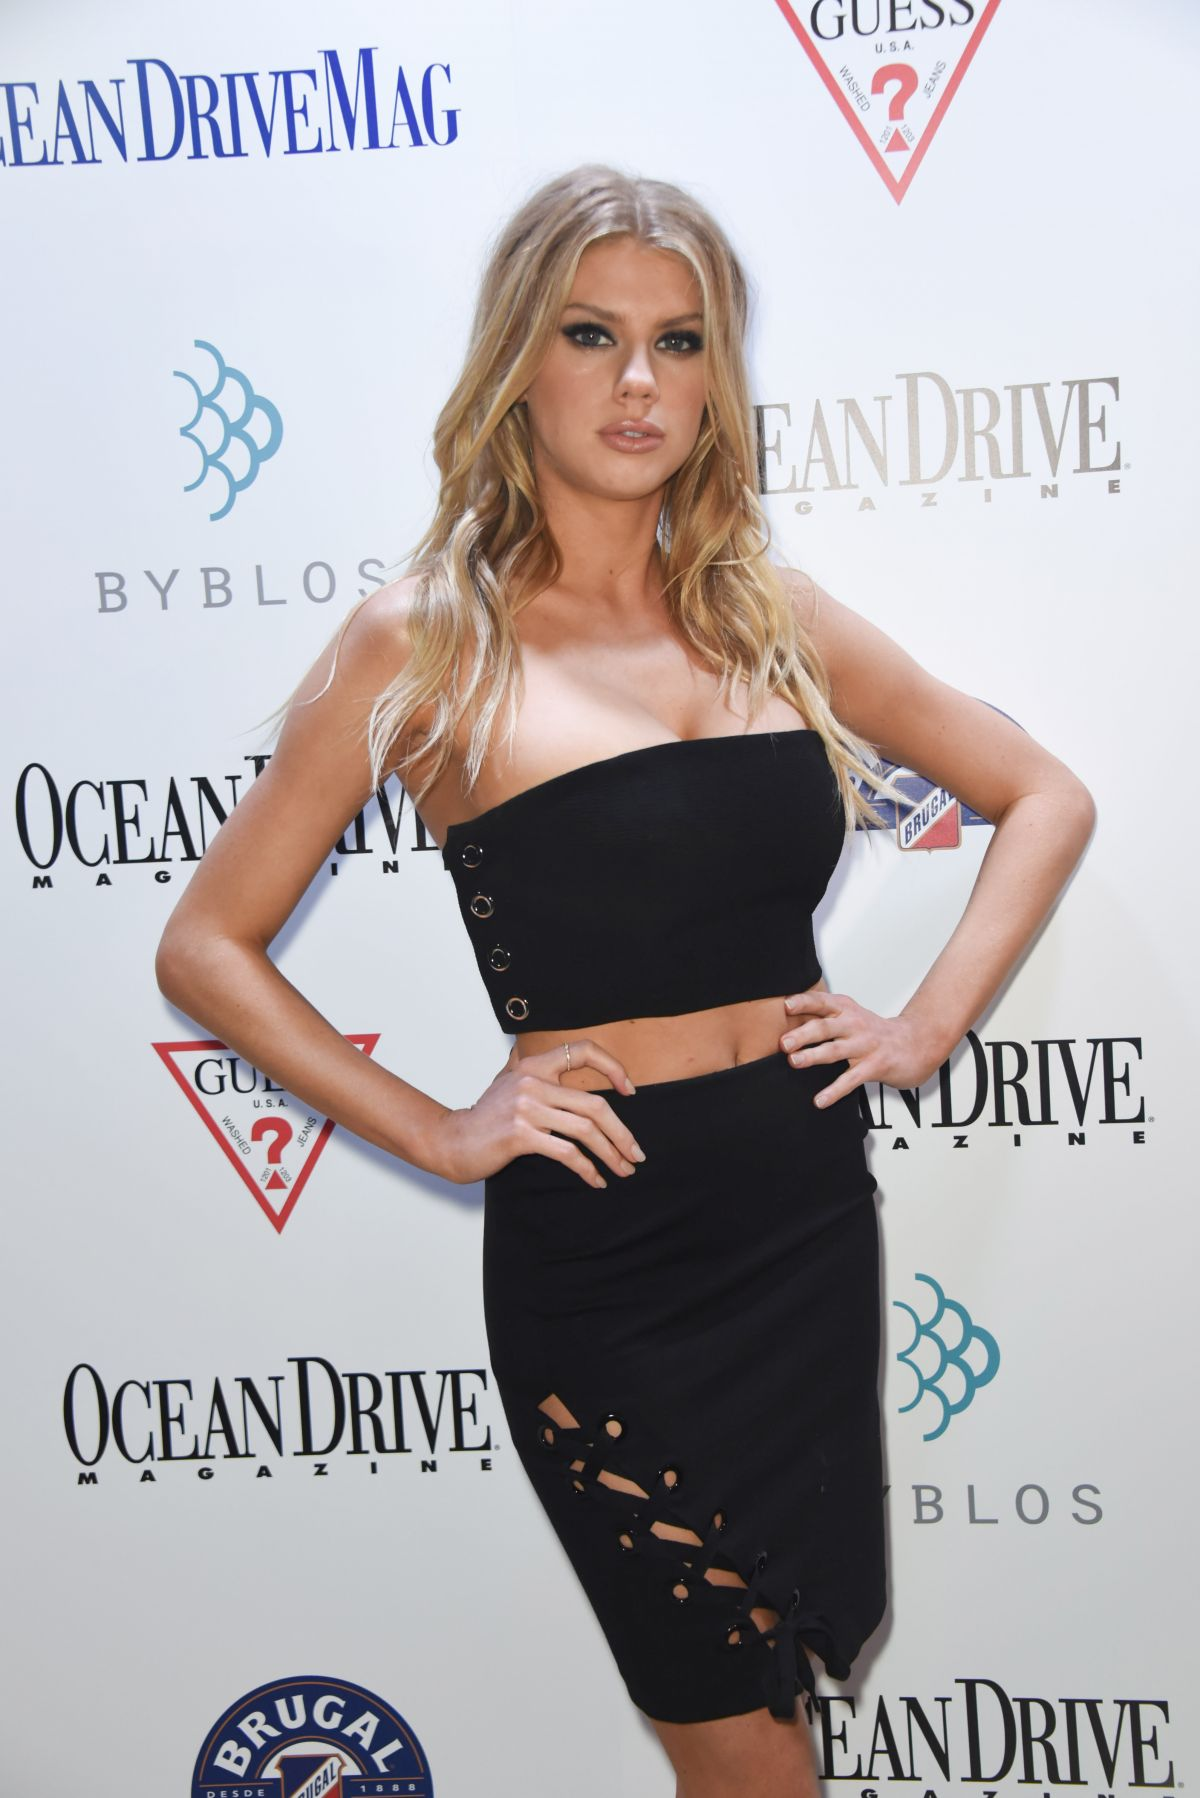 charlotte-mckinney-at-ocean-drive-magazine-celebration-party-in-miami-02-15-2017_5.jpg